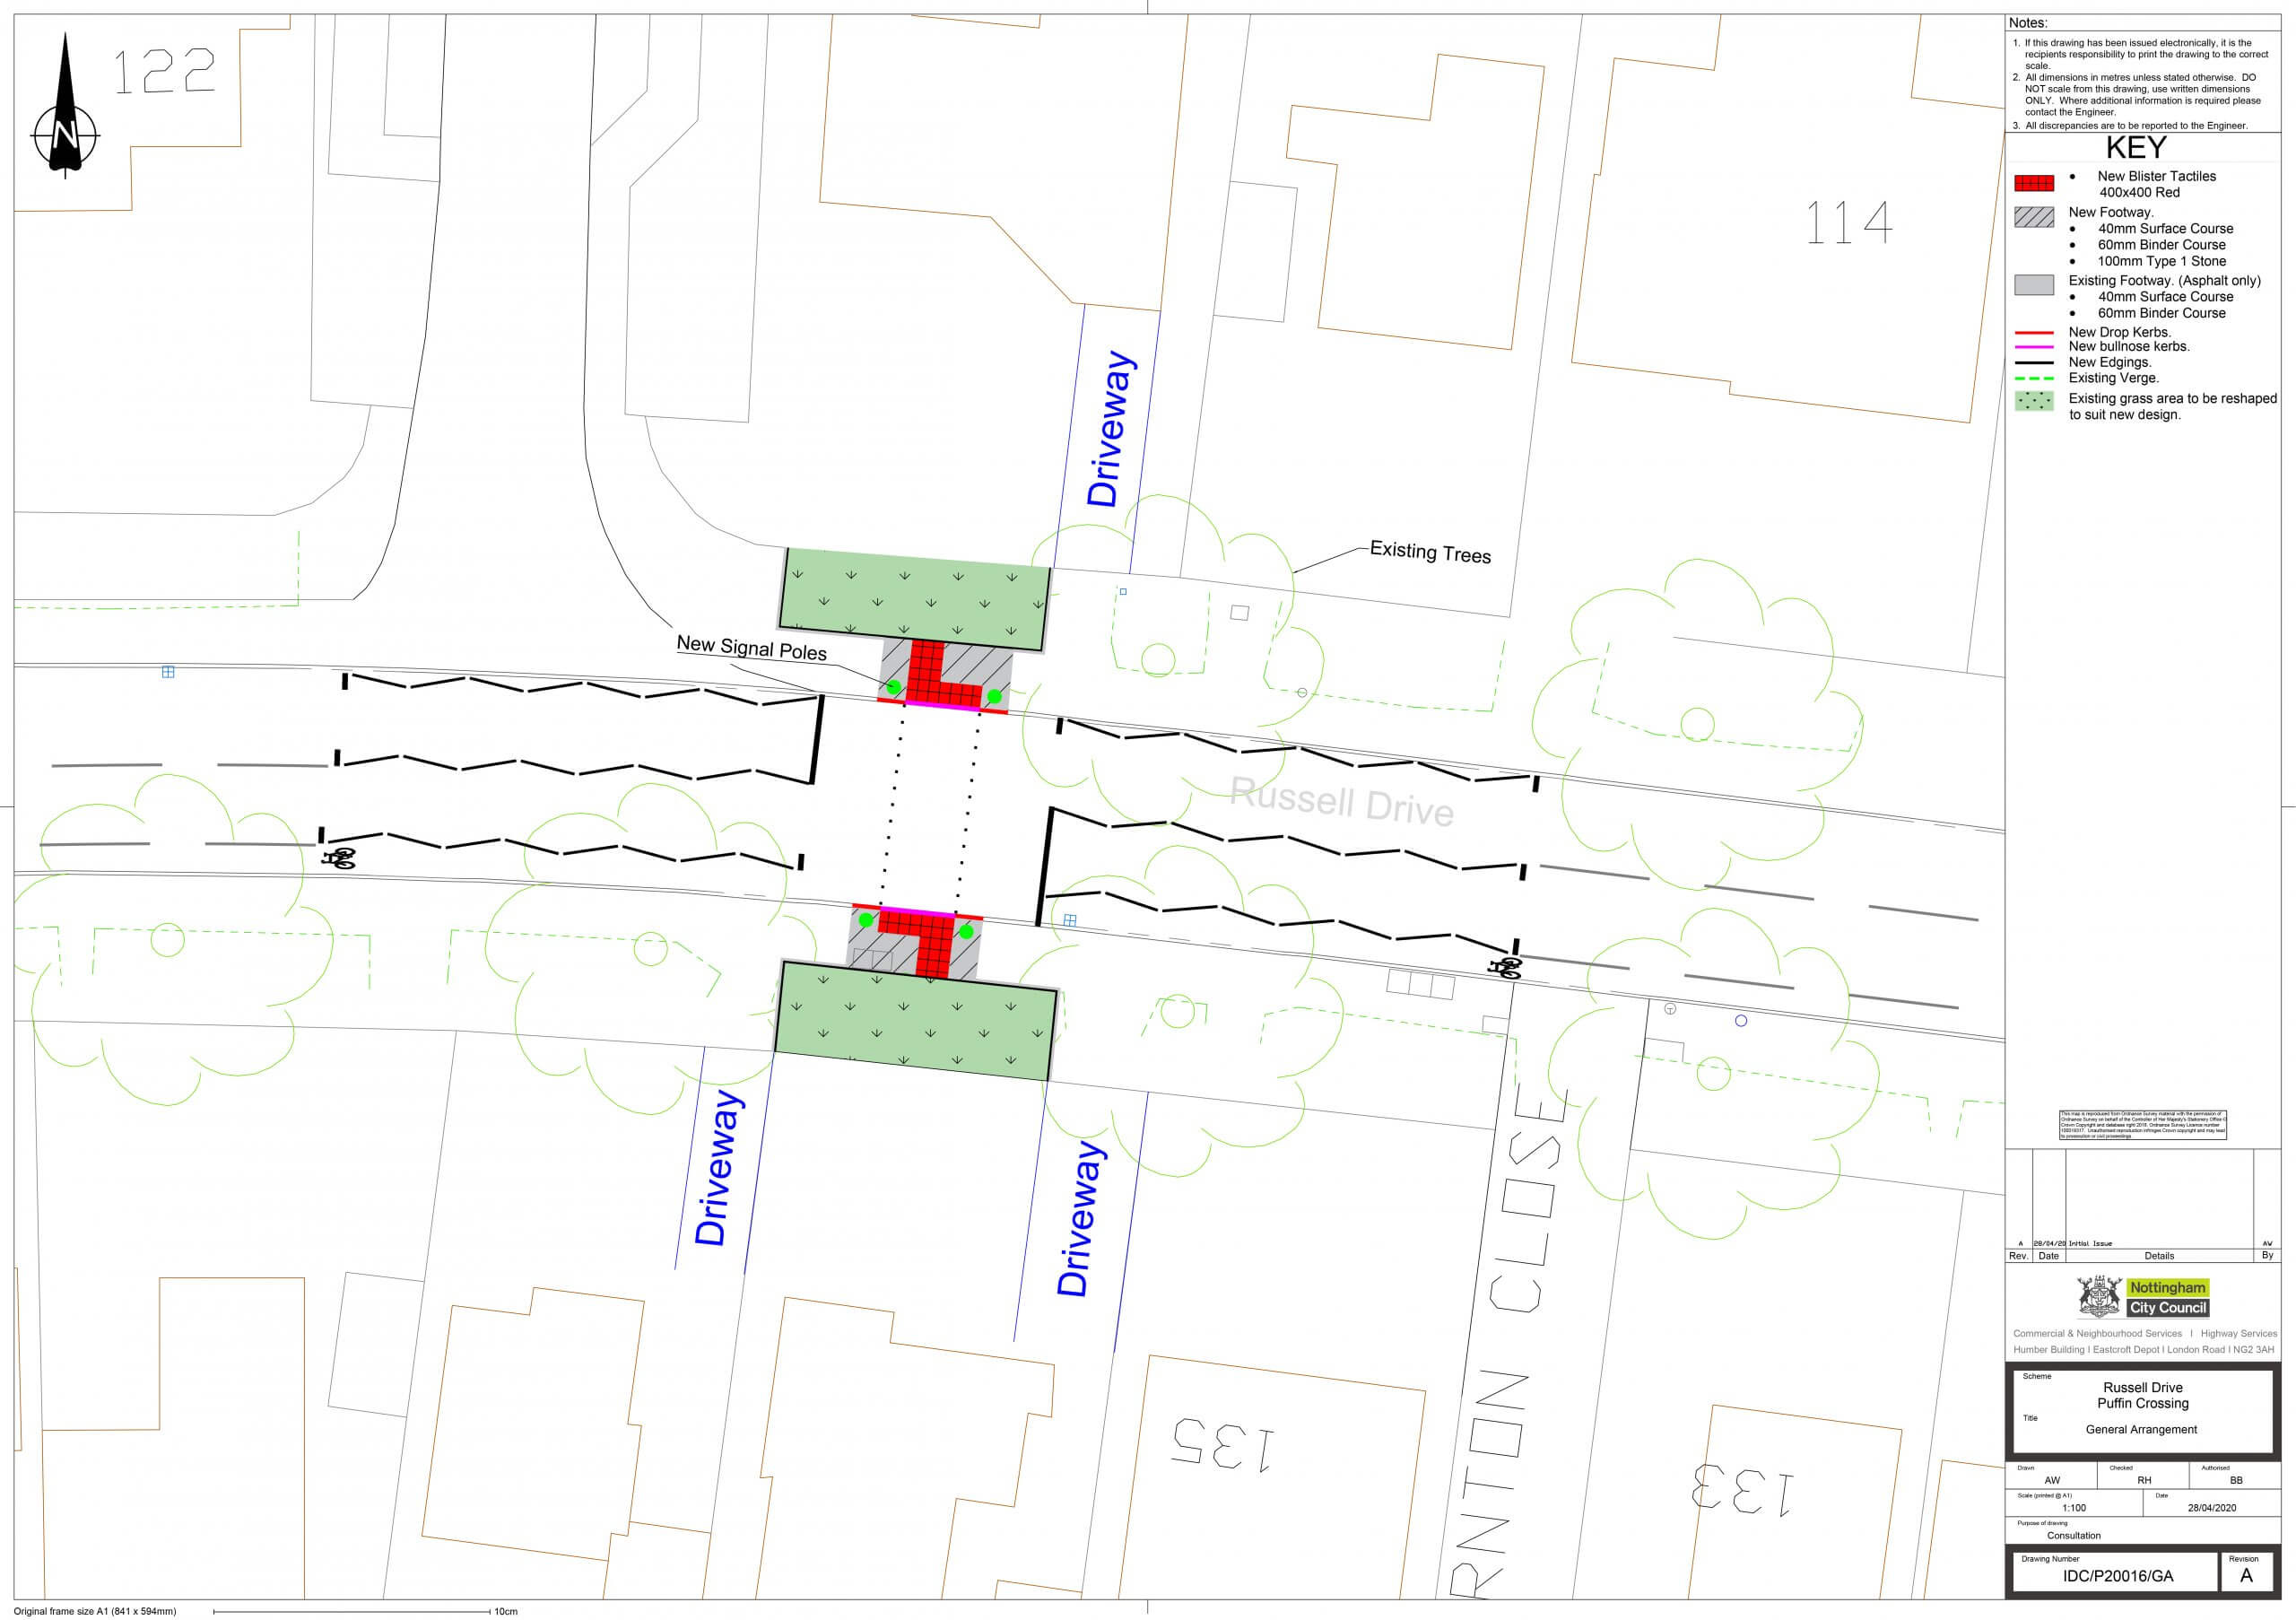 Russell Drive proposed crossing